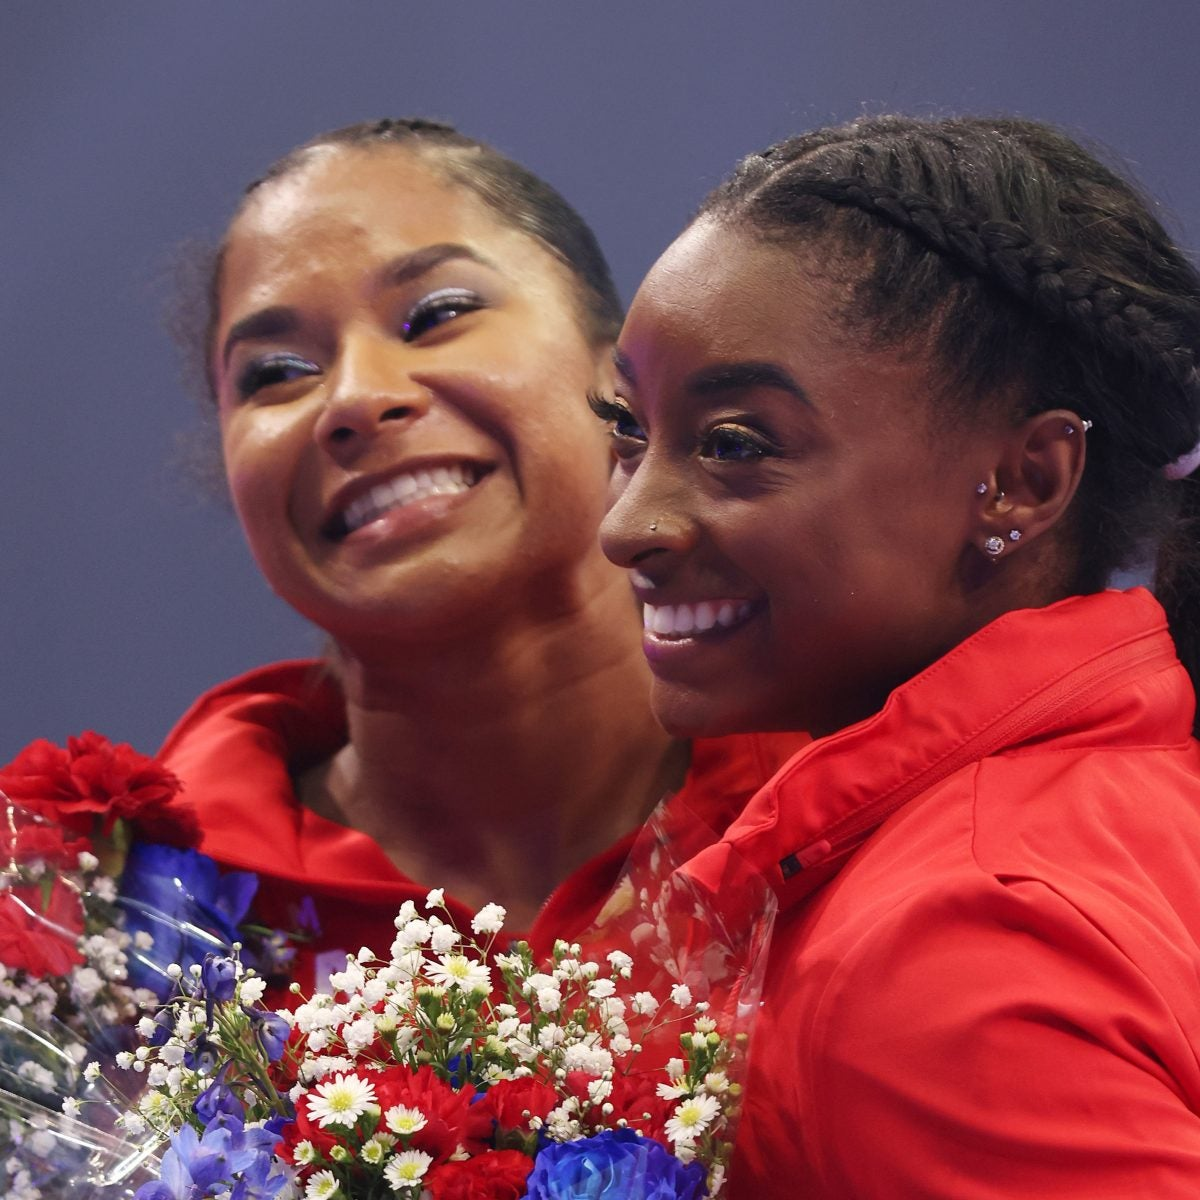 Jordan Chiles Considered Quitting Gymnastics But Simone Biles Convinced Her Not To. Now, They're Going To The Olympics Together.